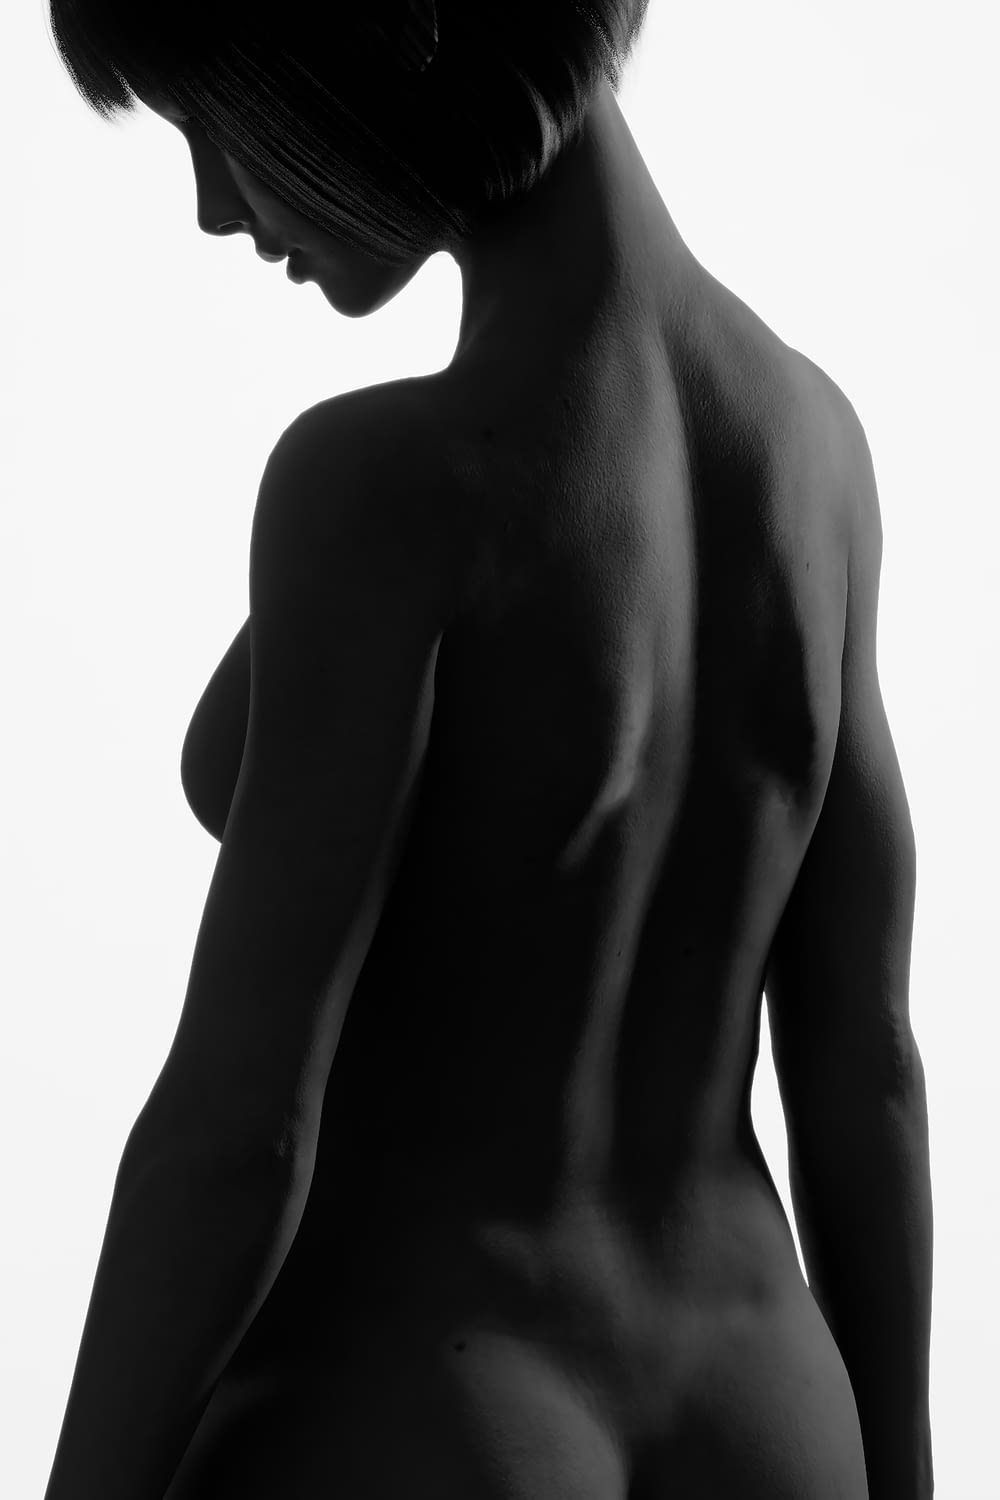 silhouette of naked woman